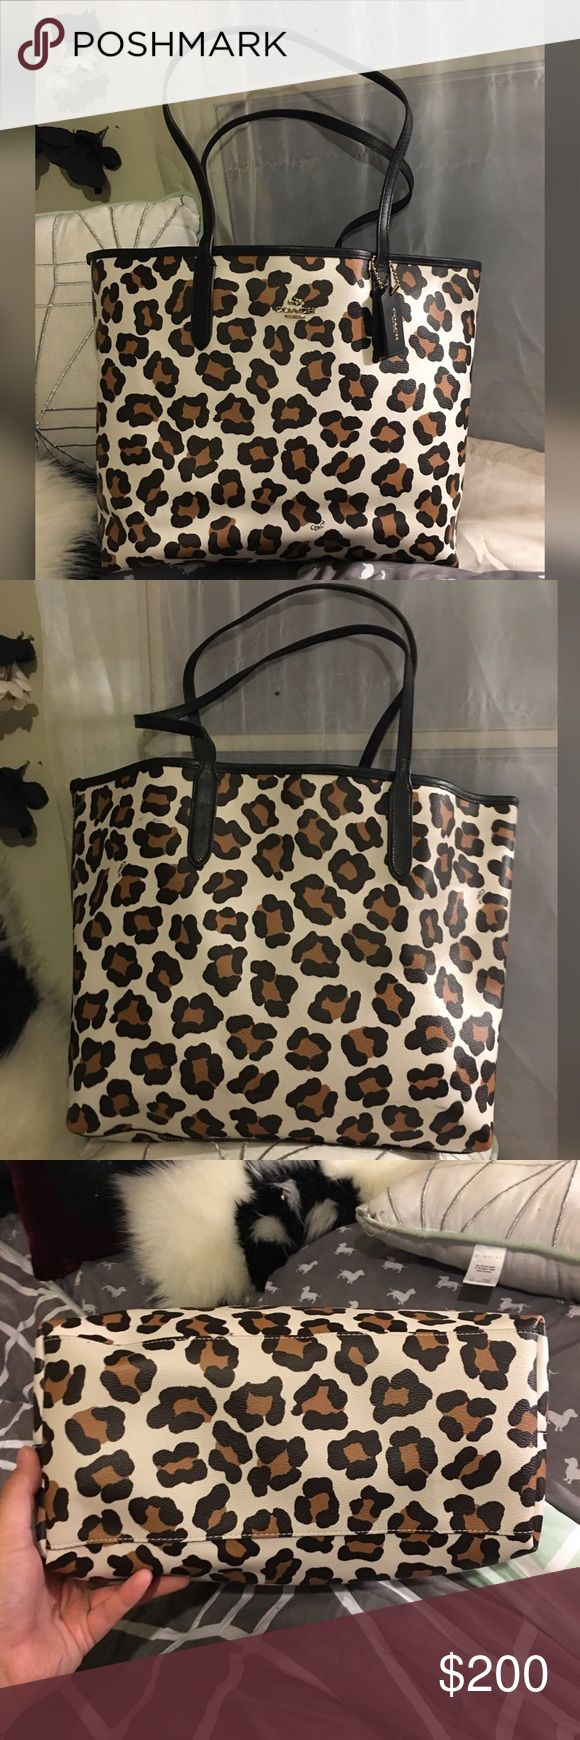 MAKE AN OFFER Brand new leopard coach tote Brand new never used leopard coach tote bag. Very stylish and about the size of a lv neverfull mm Coach Bags Totes